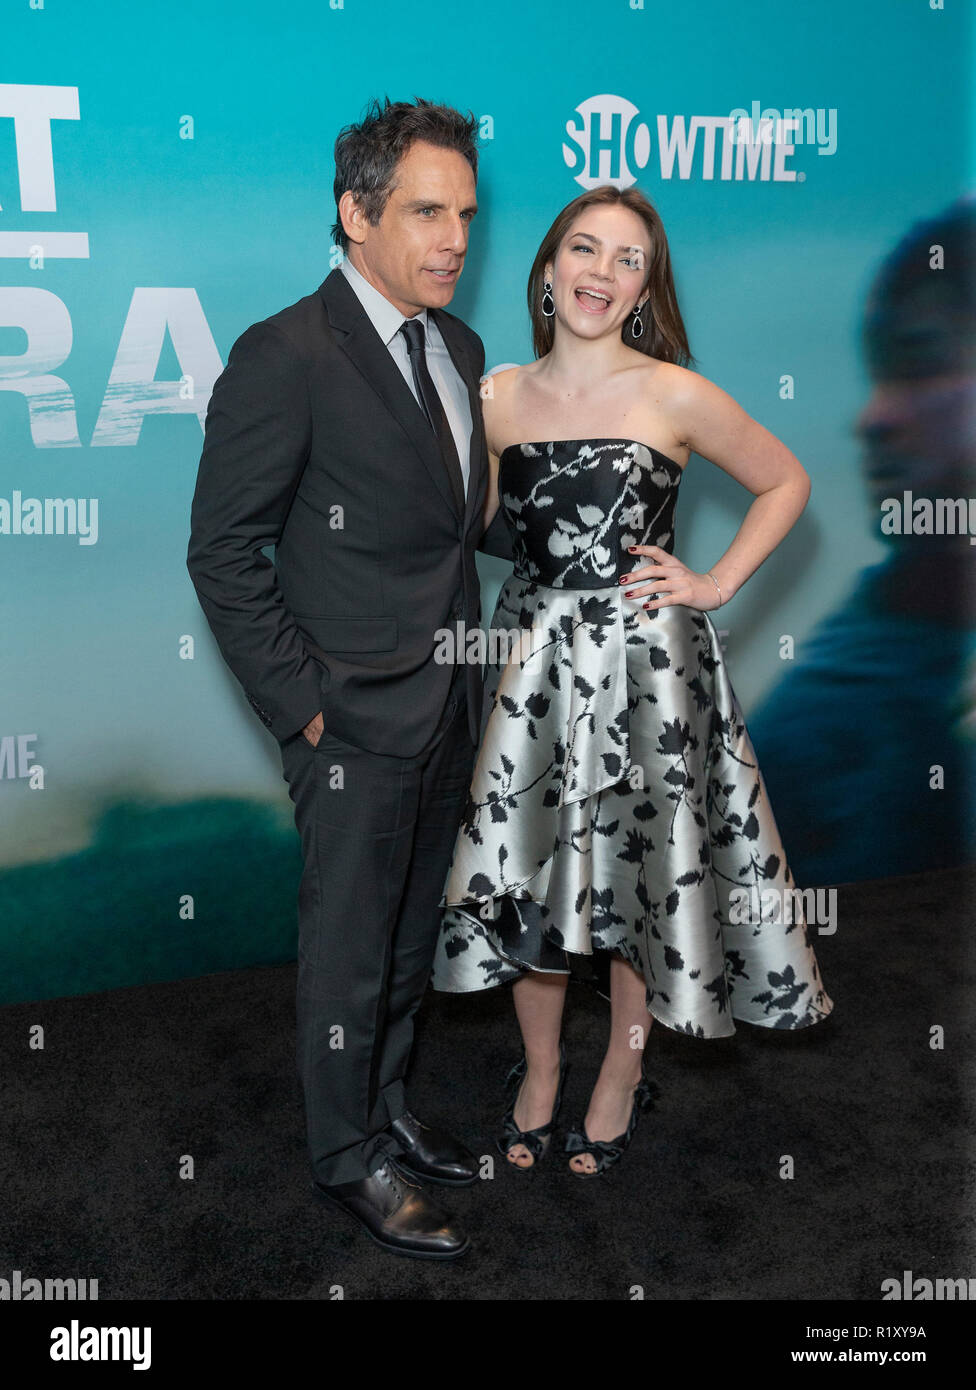 New York, United States. 14th Nov, 2018. Ben Stiller and Ella Olivia Stiller attend the Showtime Series Premiere of Escape At Dannemora at Alice Tully Hall Lincoln Center Credit: Lev Radin/Pacific Press/Alamy Live News Stock Photo